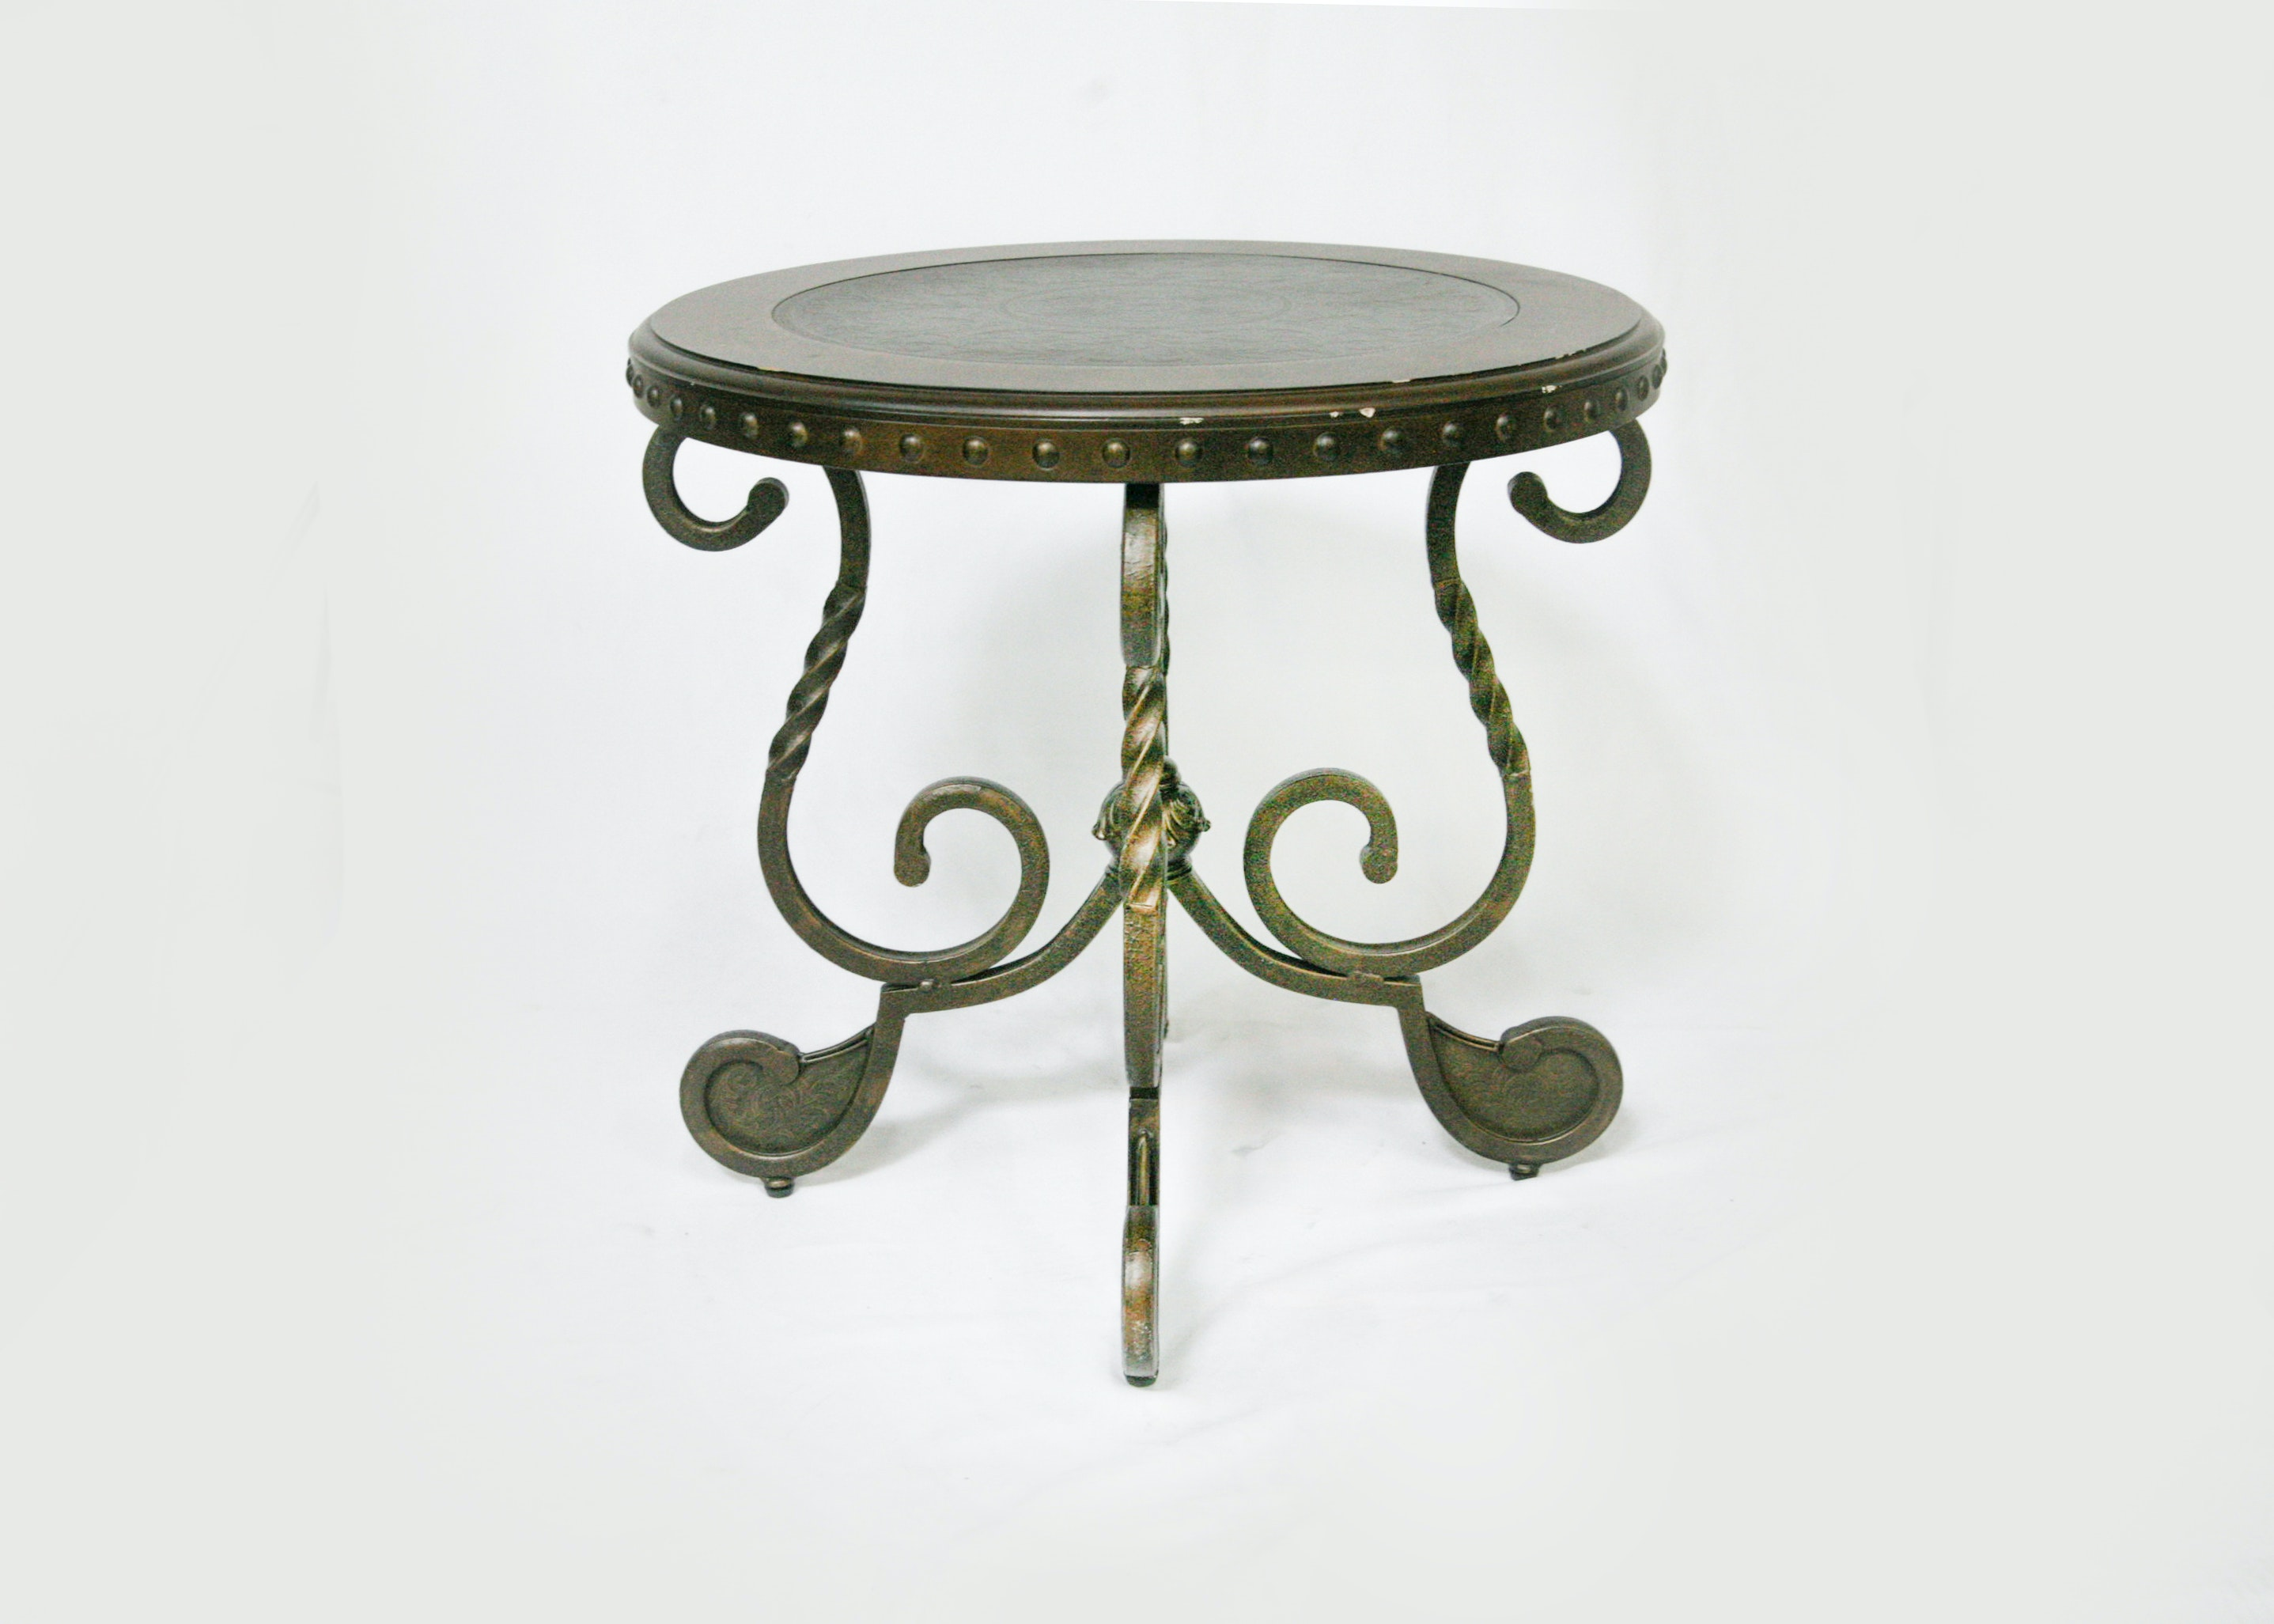 Embossed Topped Table on a Wrought Iron Base